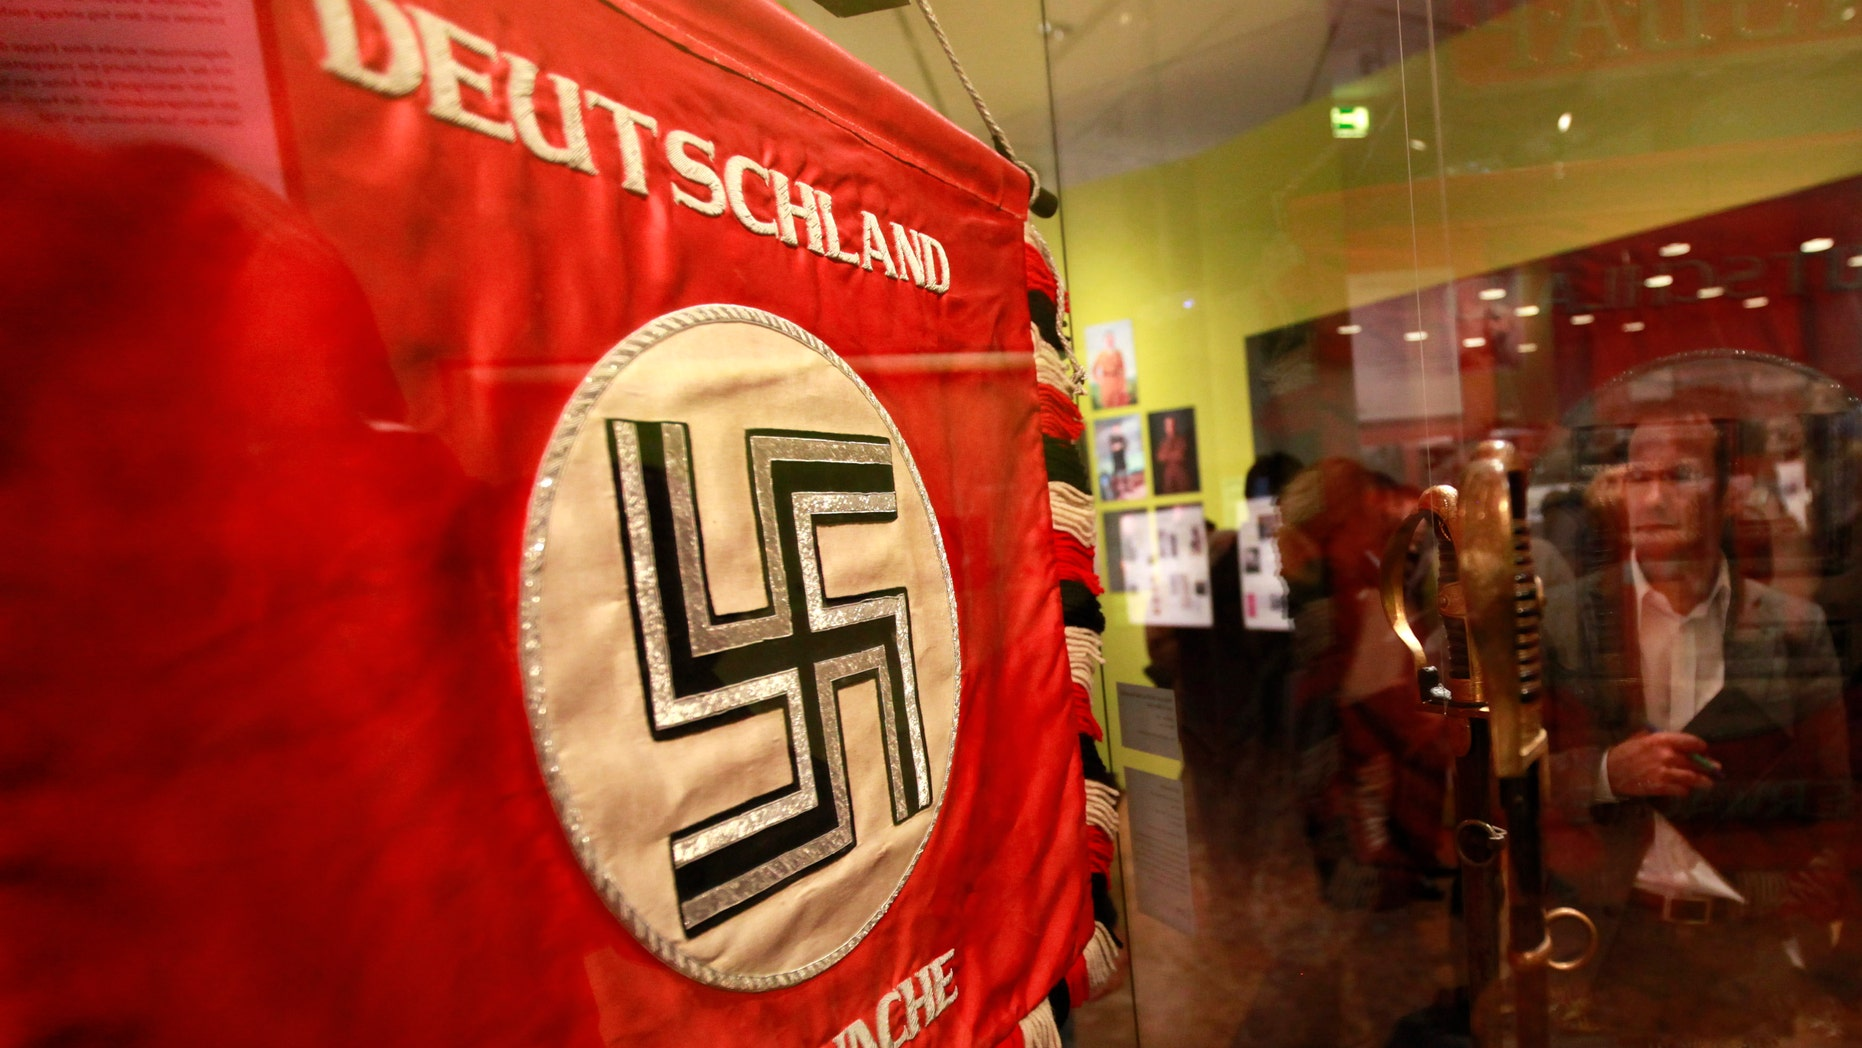 """File photo - A flag with the Nazi swastika is pictured at the media preview of """"Hilter und die Deutsche Volksgemeinschaft und Verbrechen"""" (Hitler and the German Nation and Crime) at the Deutsche Historisches Museum (German Historical Museum) in Berlin October 13, 2010. The exhibition will open to the public on October 15 and run till February 6, 2011. (REUTERS/Fabrizio Bensch)"""